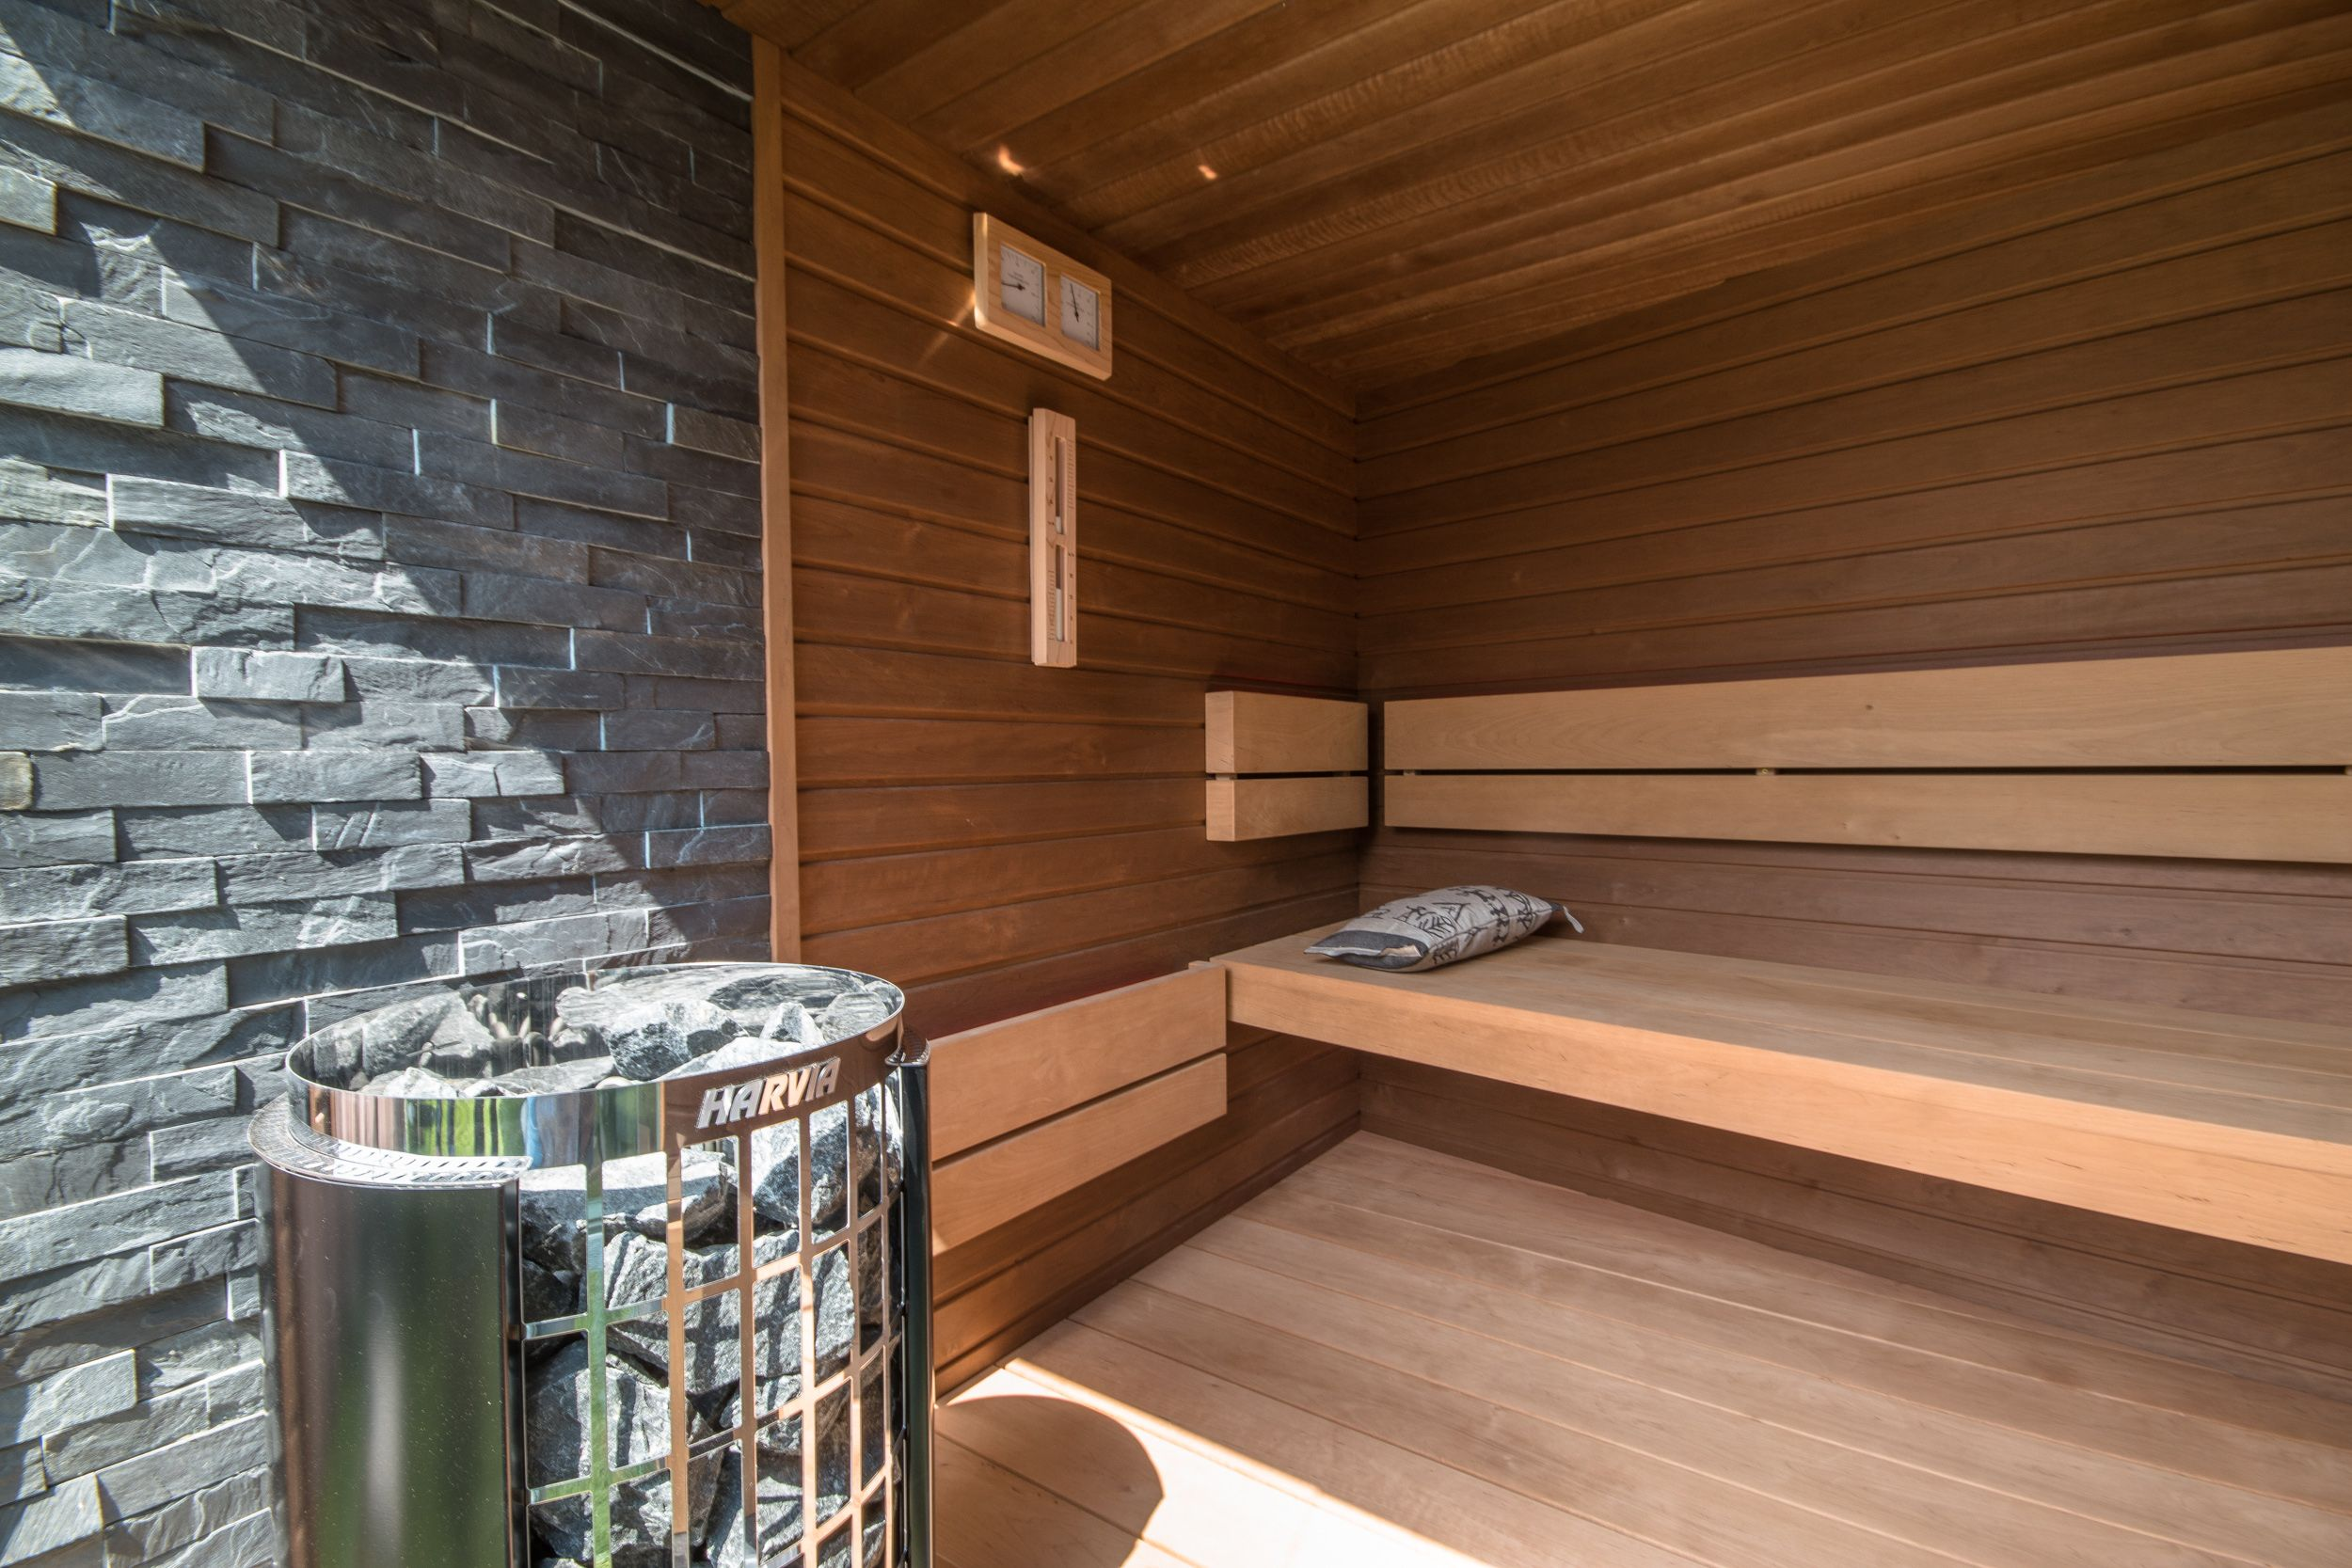 outdoor sauna gartensauna nach ma f r kunden geplant sauna harvia ofen steuerung. Black Bedroom Furniture Sets. Home Design Ideas